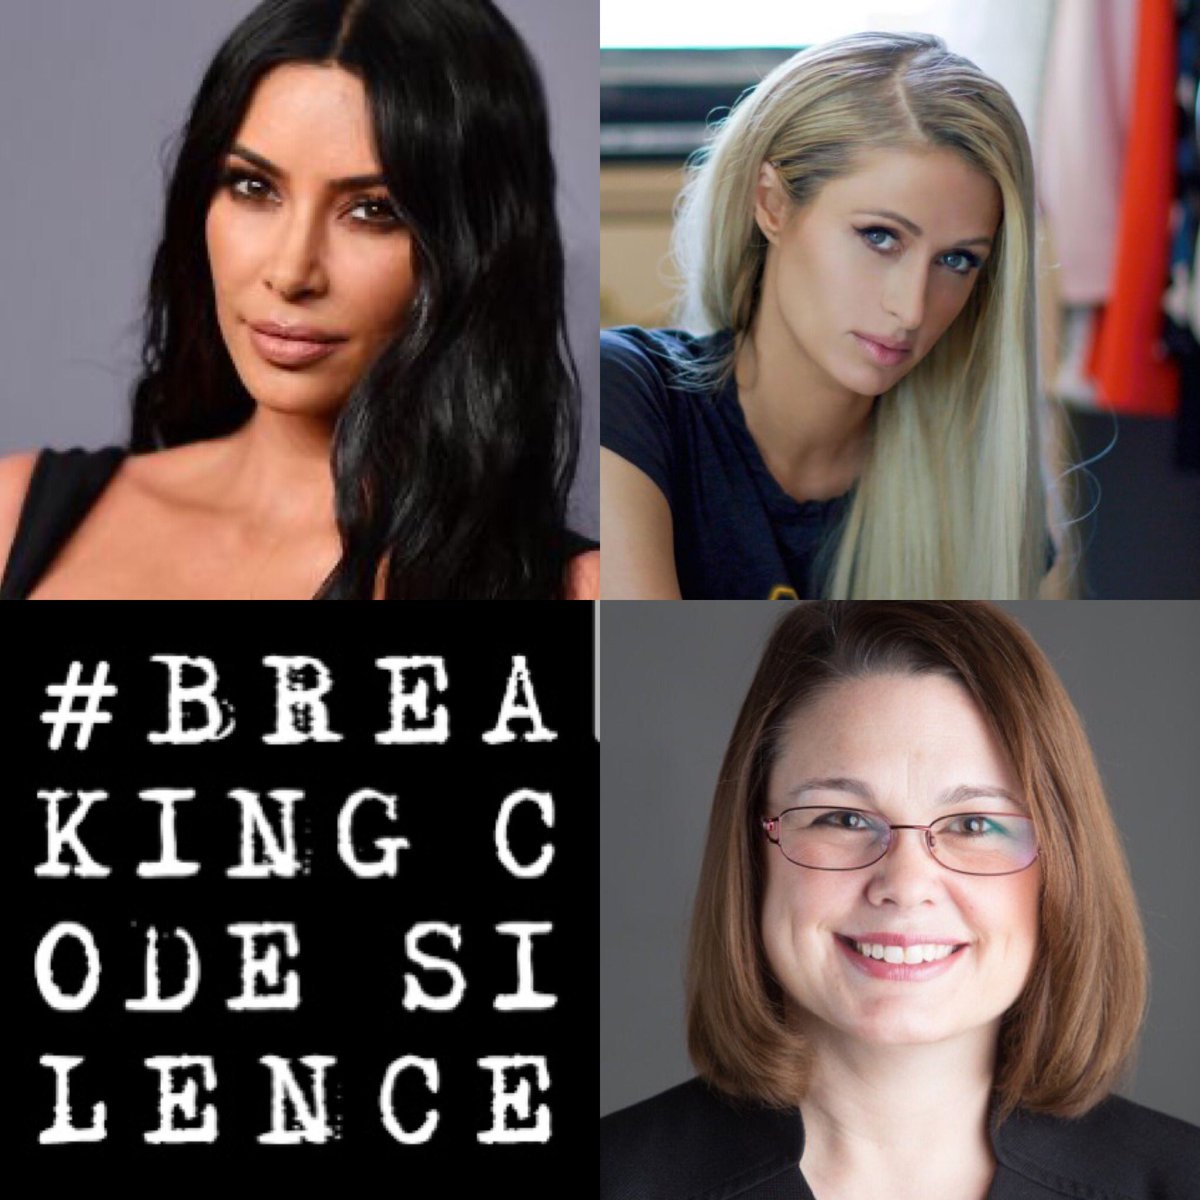 All #troubledteenindustrysurvivors and current victims NEED @SenSaraGelser and @BreakingCodeSi1 and @ParisHilton (and imo @KimKardashian ) to form an alliance and #reform the #troubledteenindustry with regulation and oversight. We ARE #breakingcodesilence 🙌